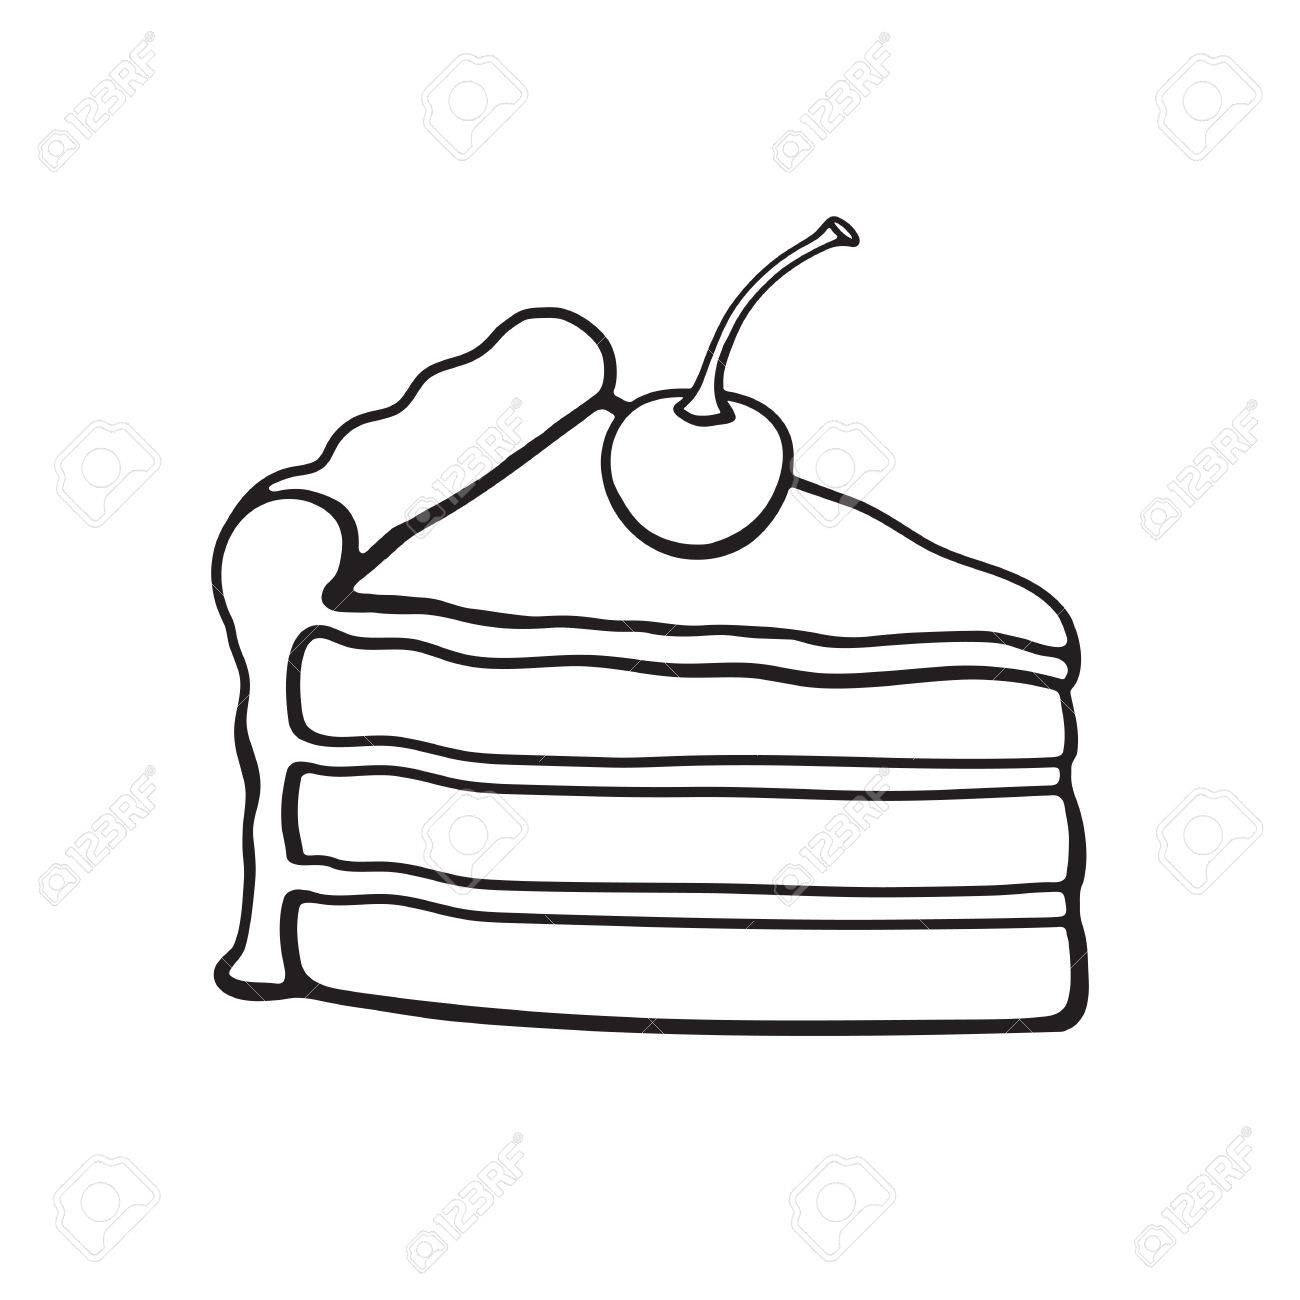 Vector Illustration. A Piece Of Cake With Chocolate Cream And ... for Drawing Cake Slice  150ifm